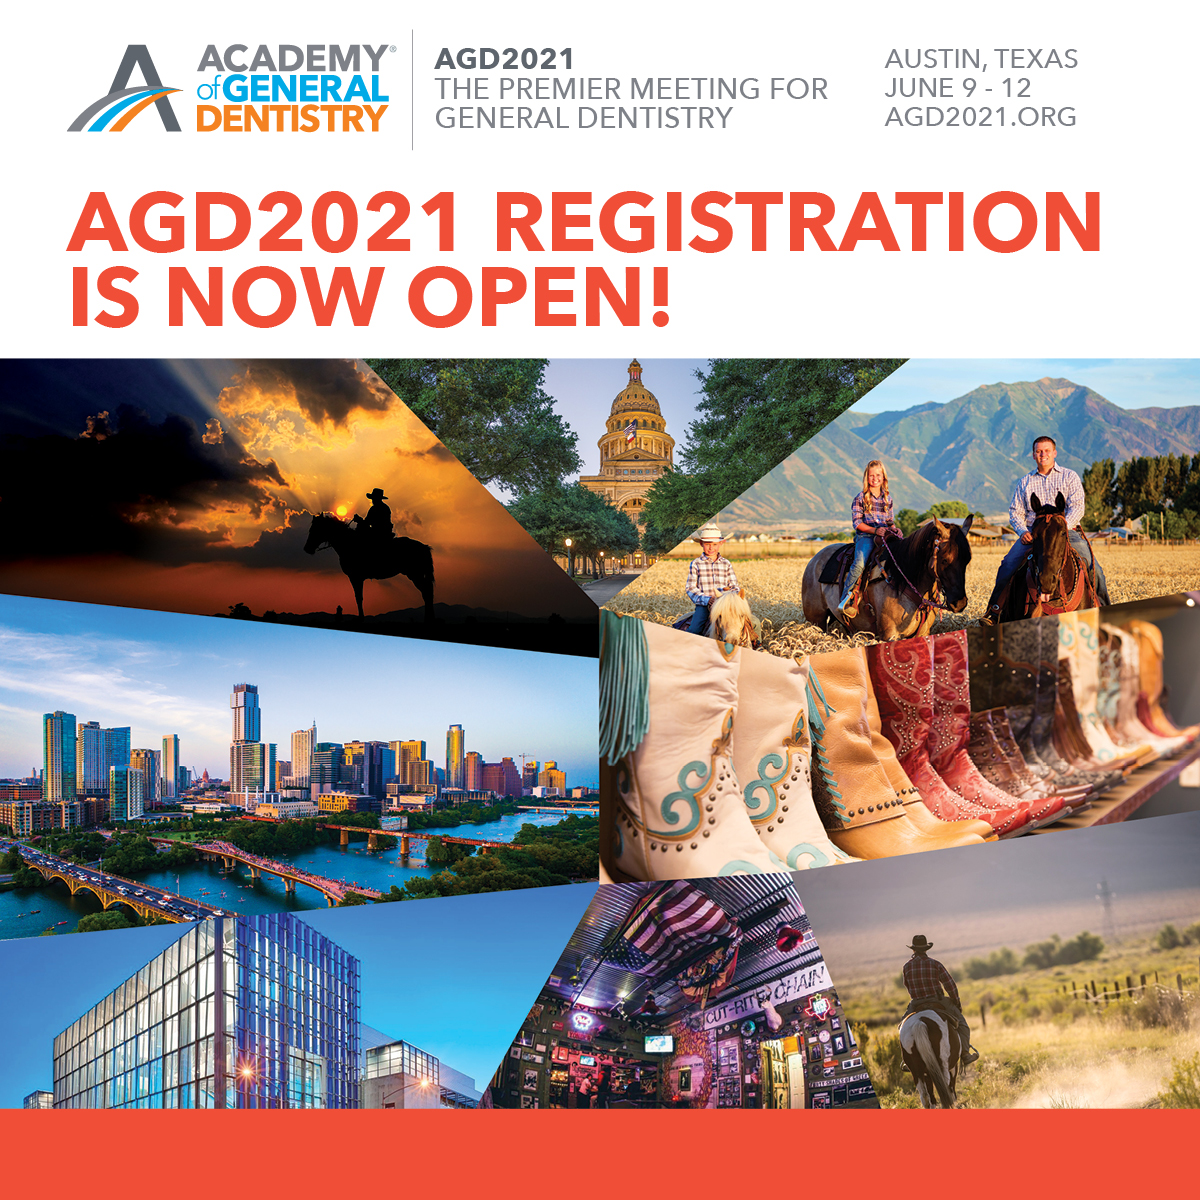 July 16_AGD2021 registration